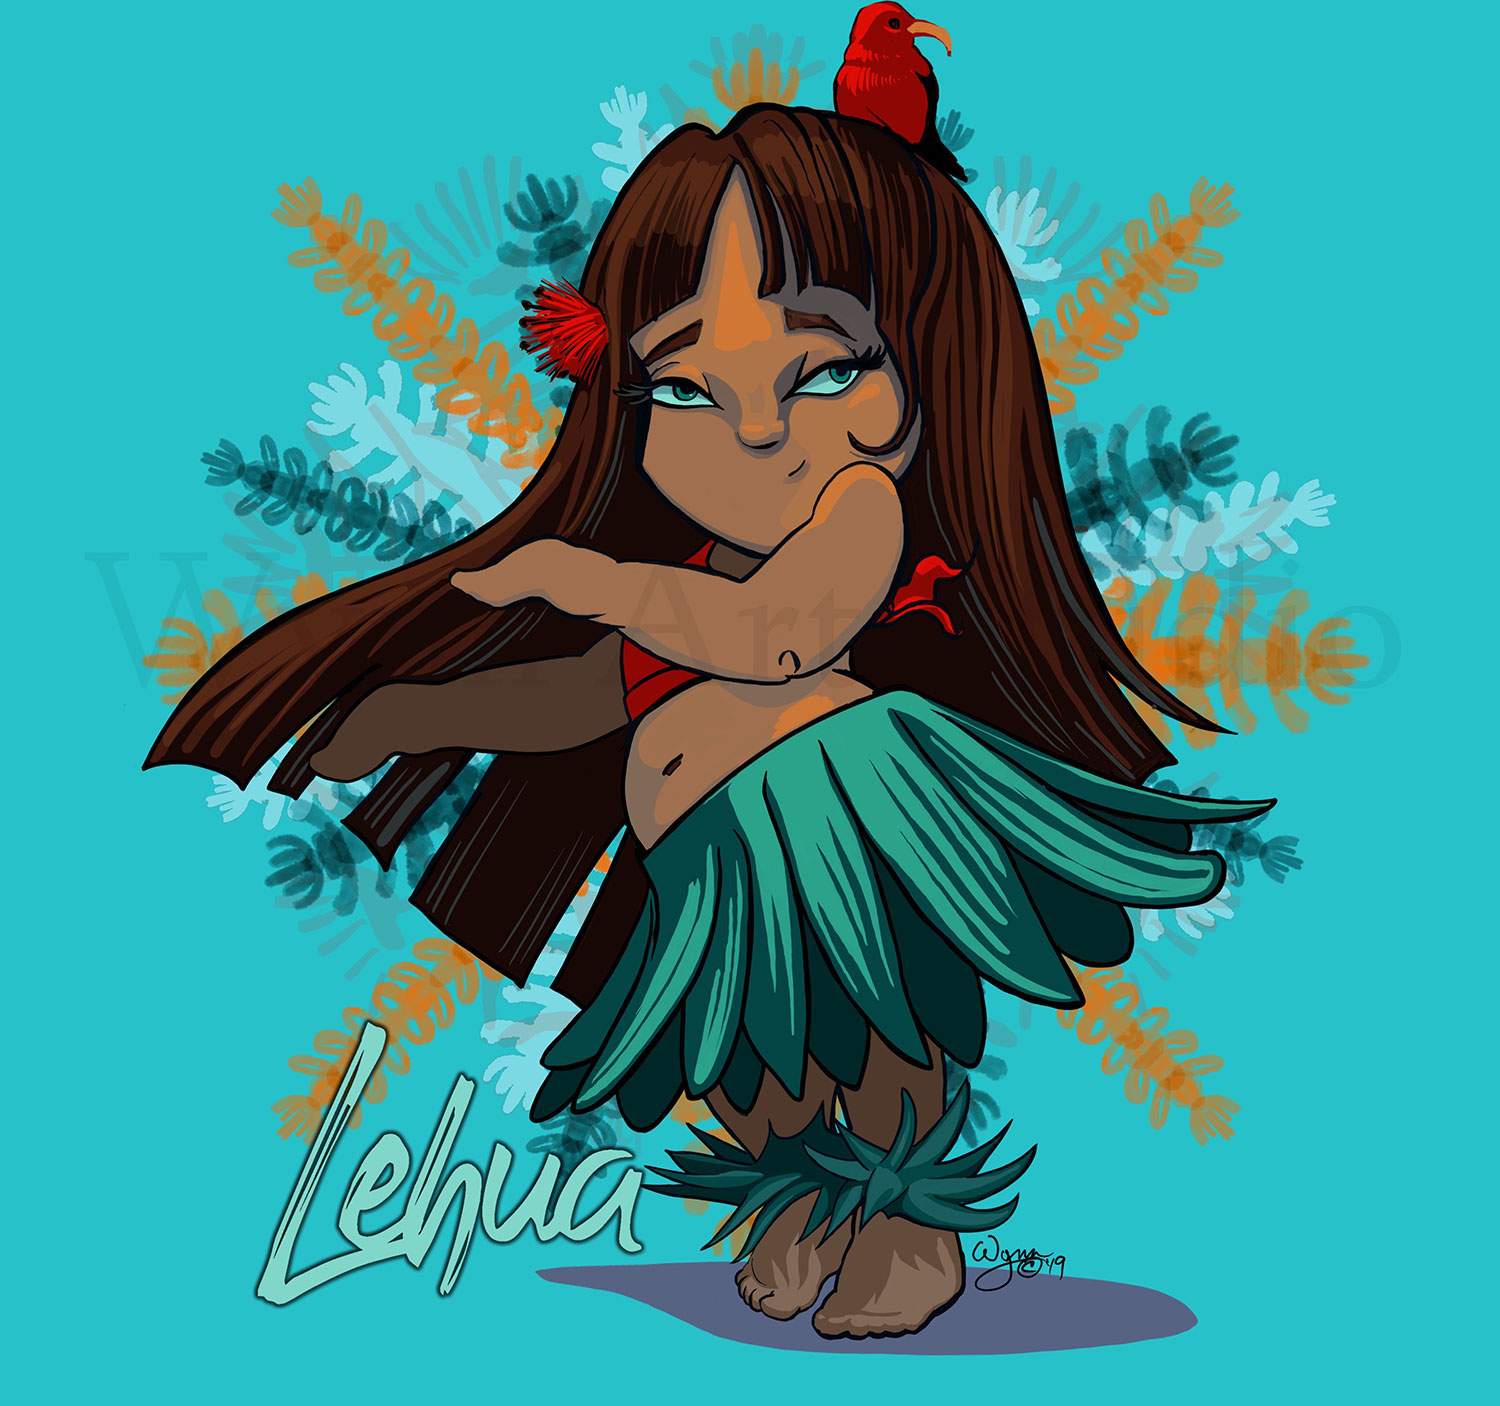 Lehua Hula Girl Illustration  Products available on Threadless.